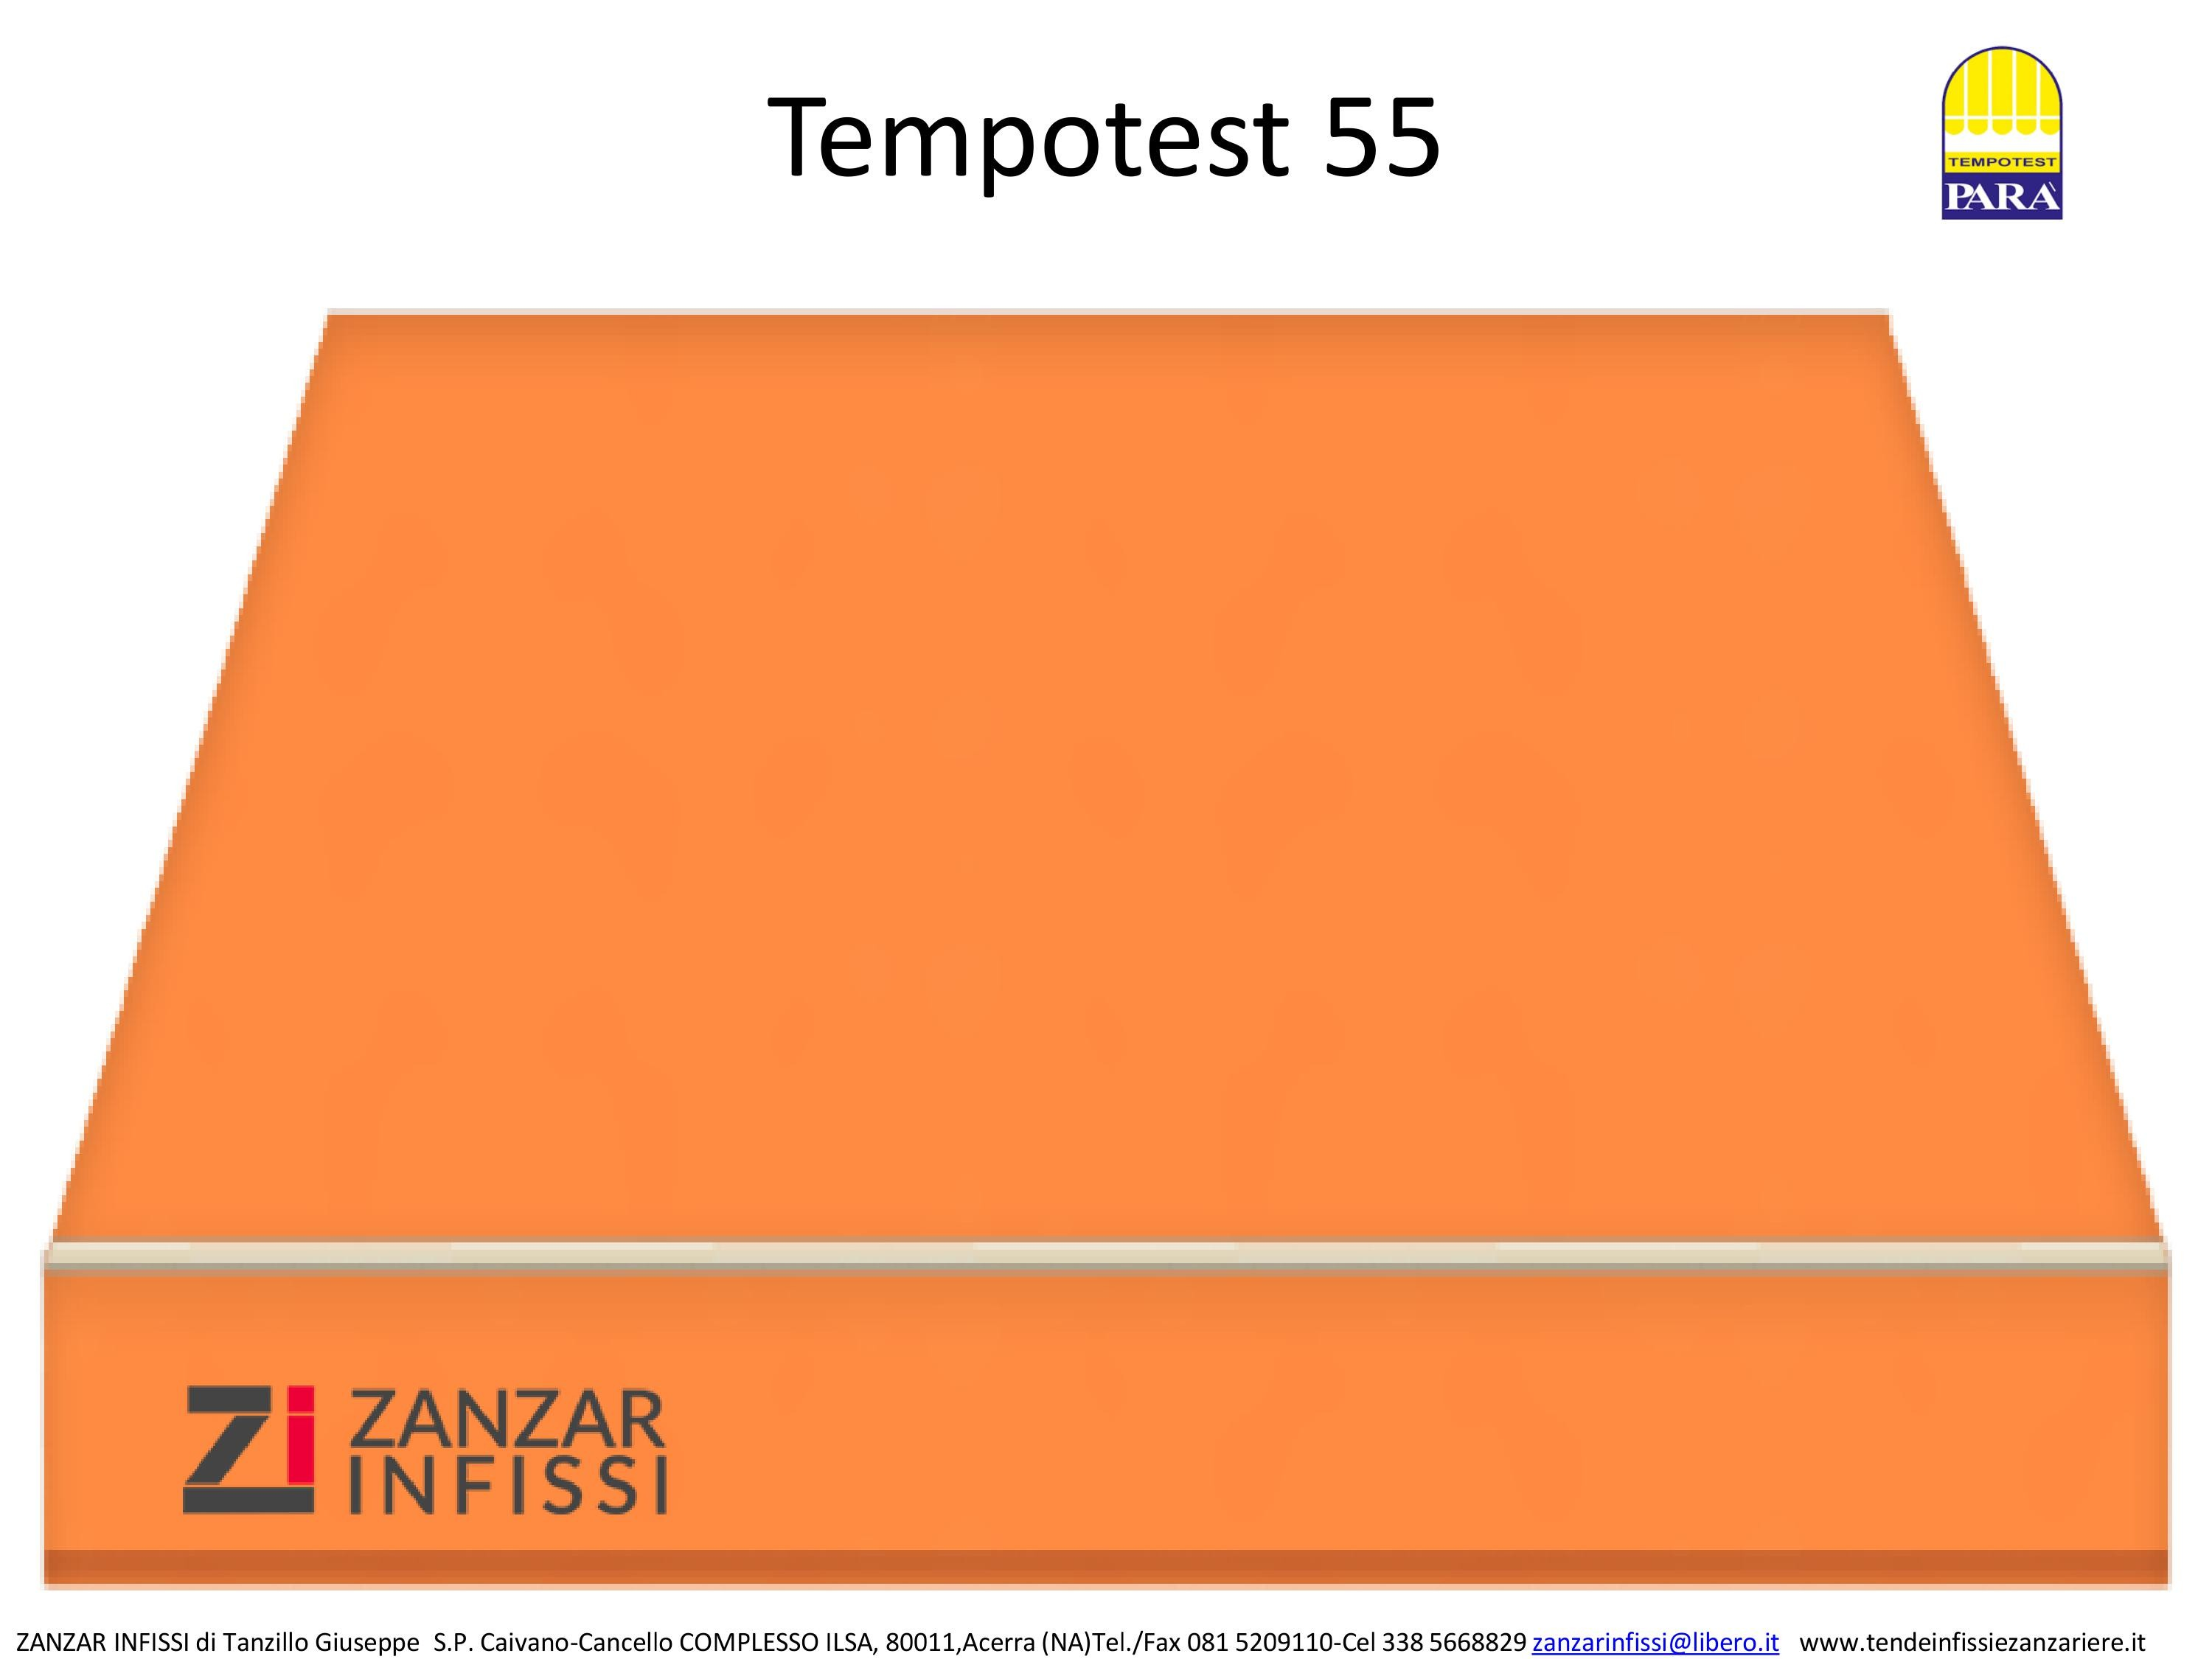 Tempotest 55